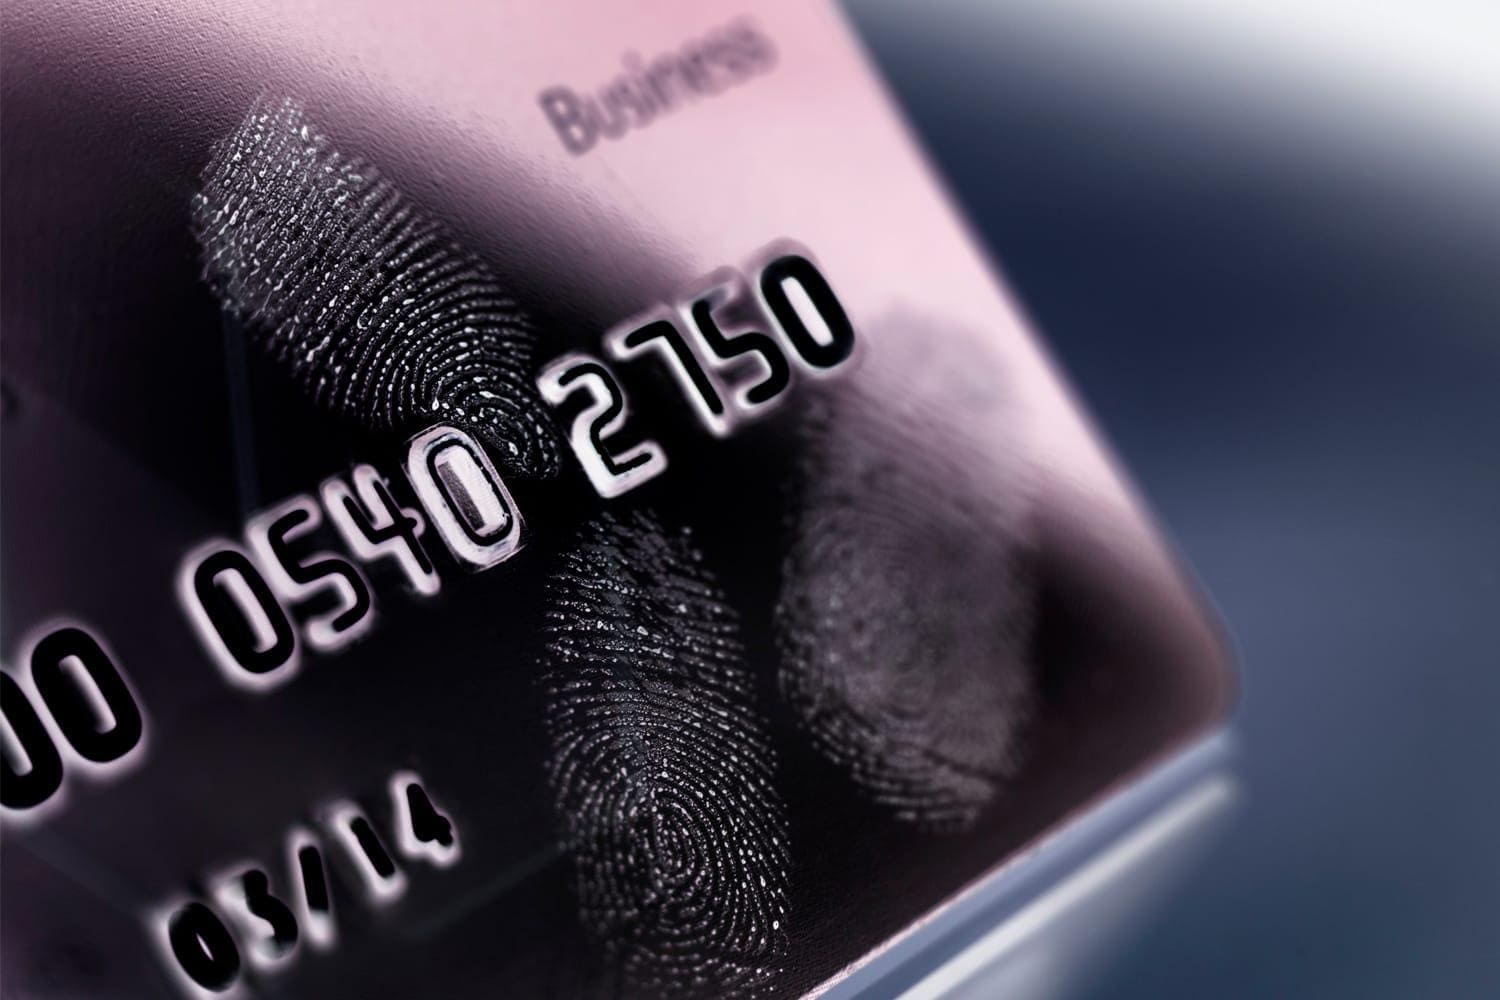 Credit card fraud conceptual image